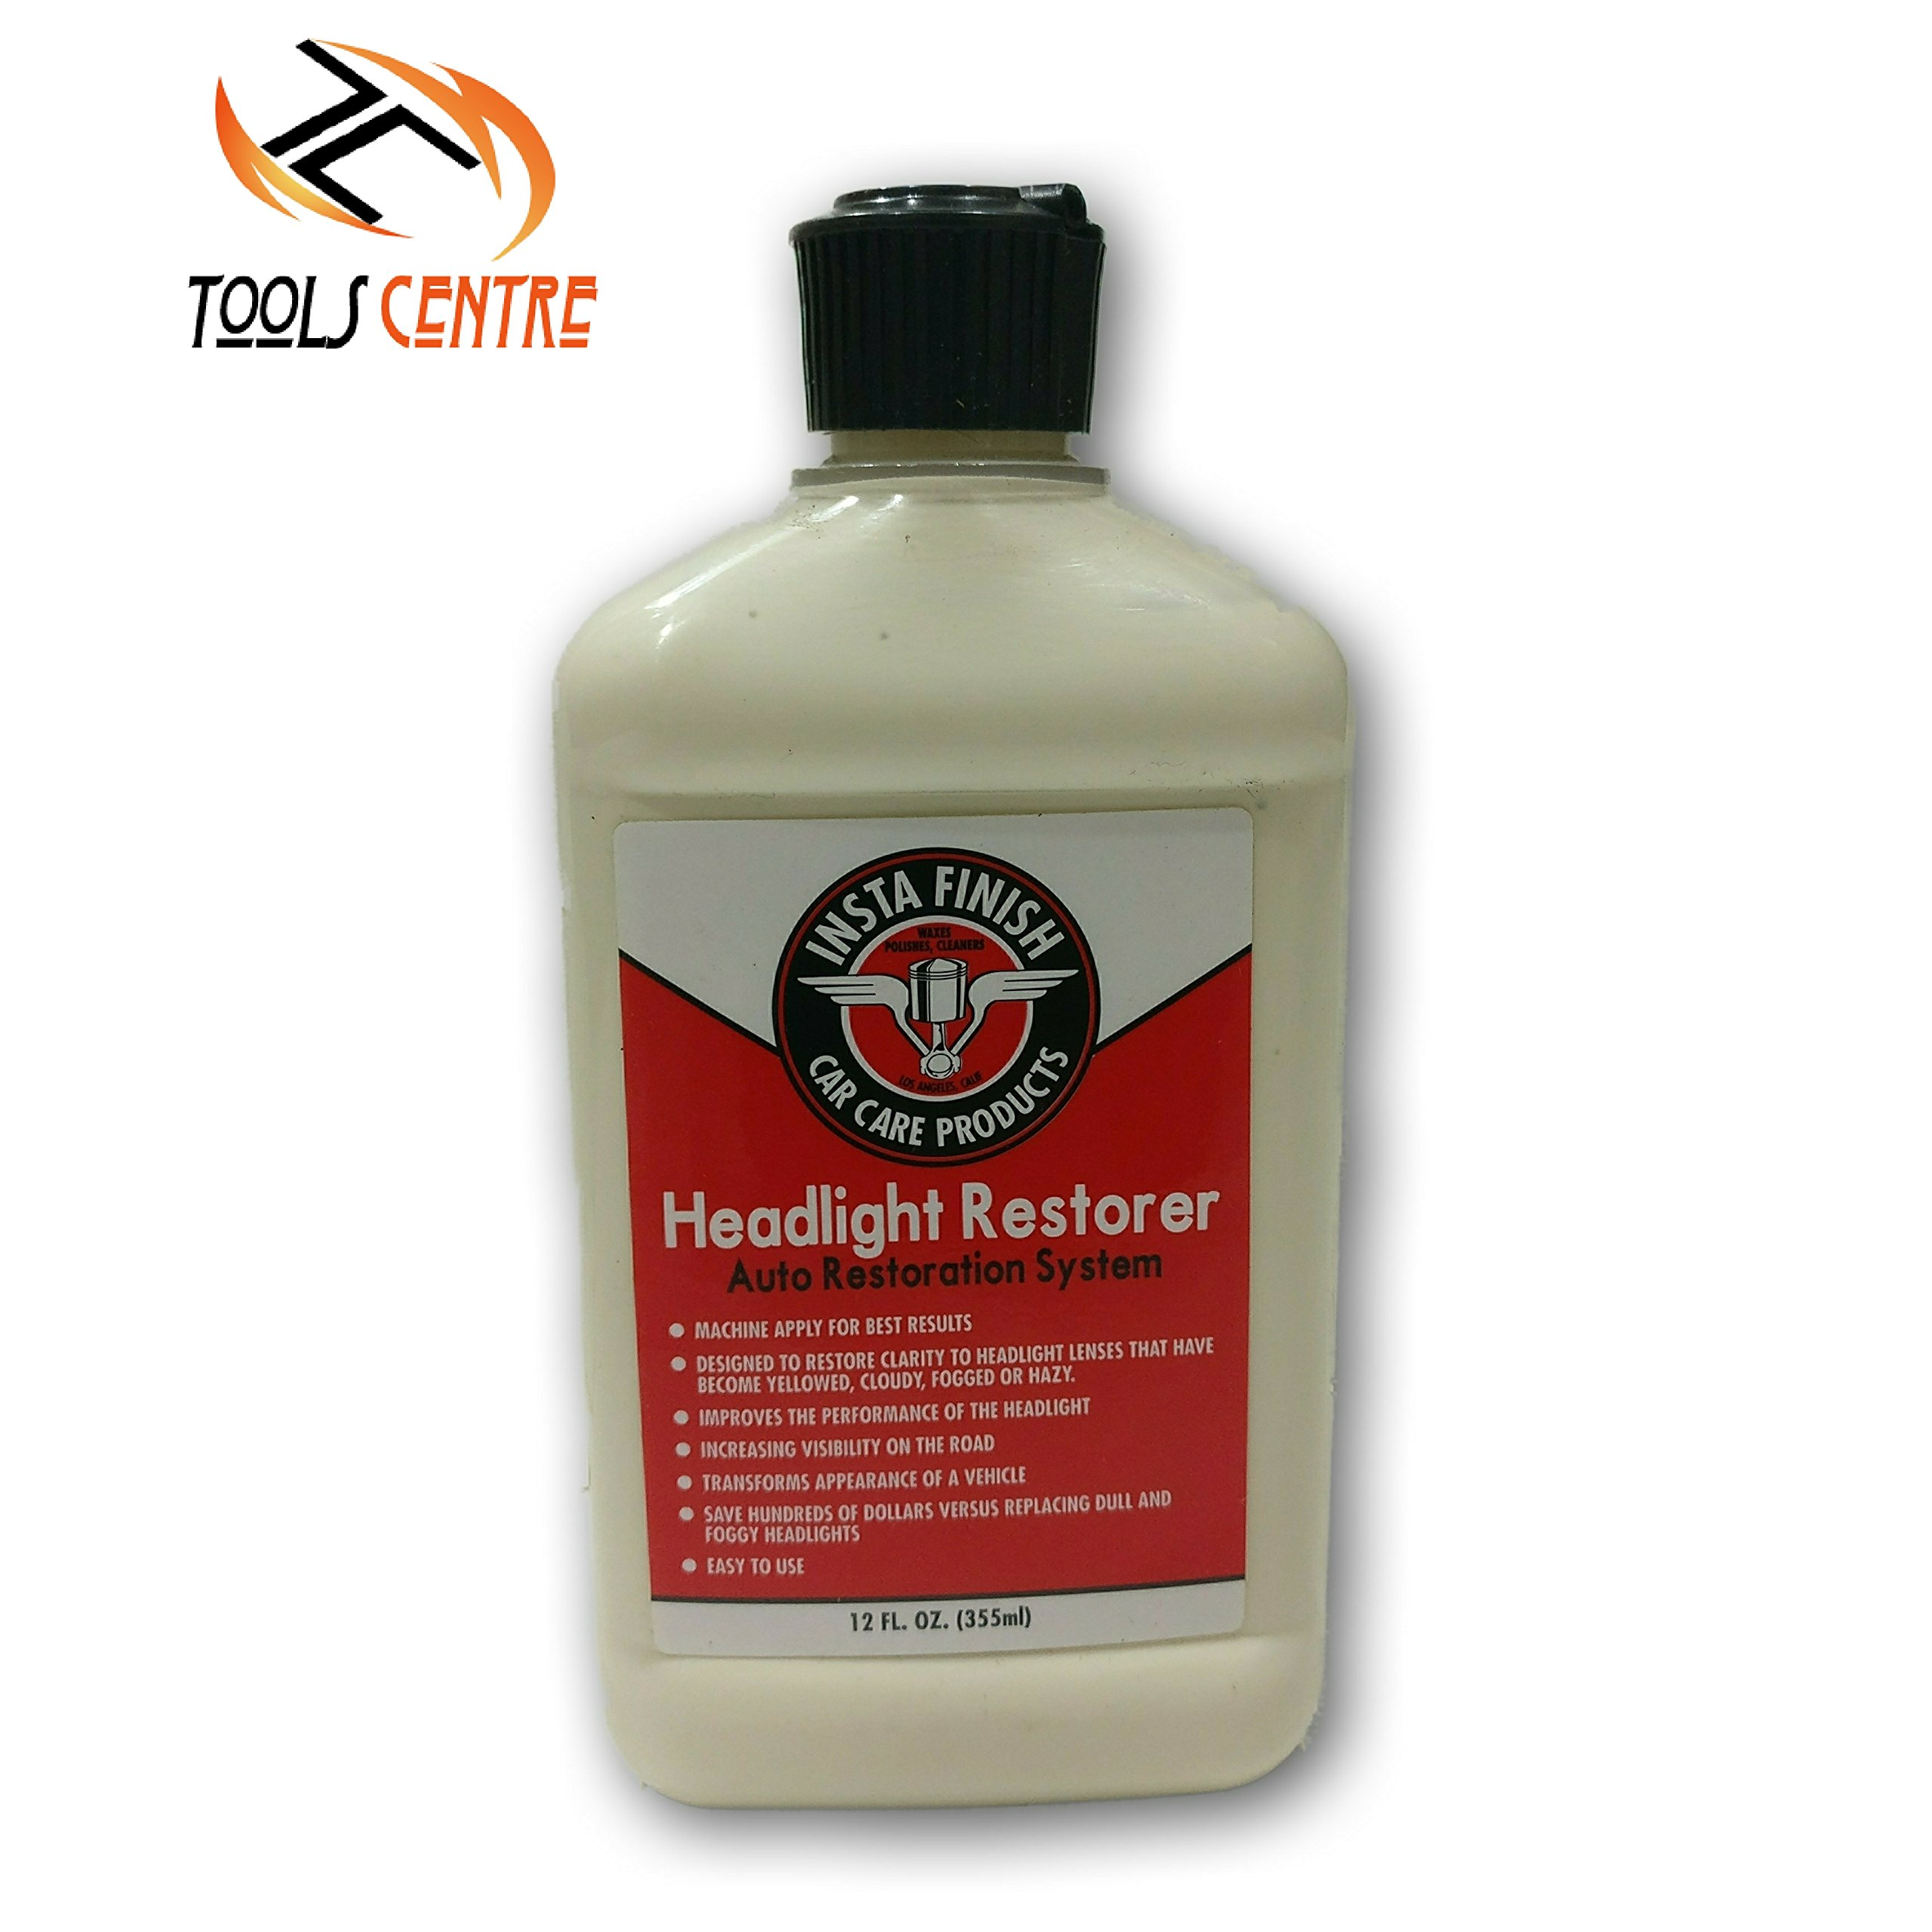 Tools Centre Insta Finish Head Light Restorer Car Care Auto Restoration Designed To Restore Clarity To Headlight Lenses. by Tools Centre